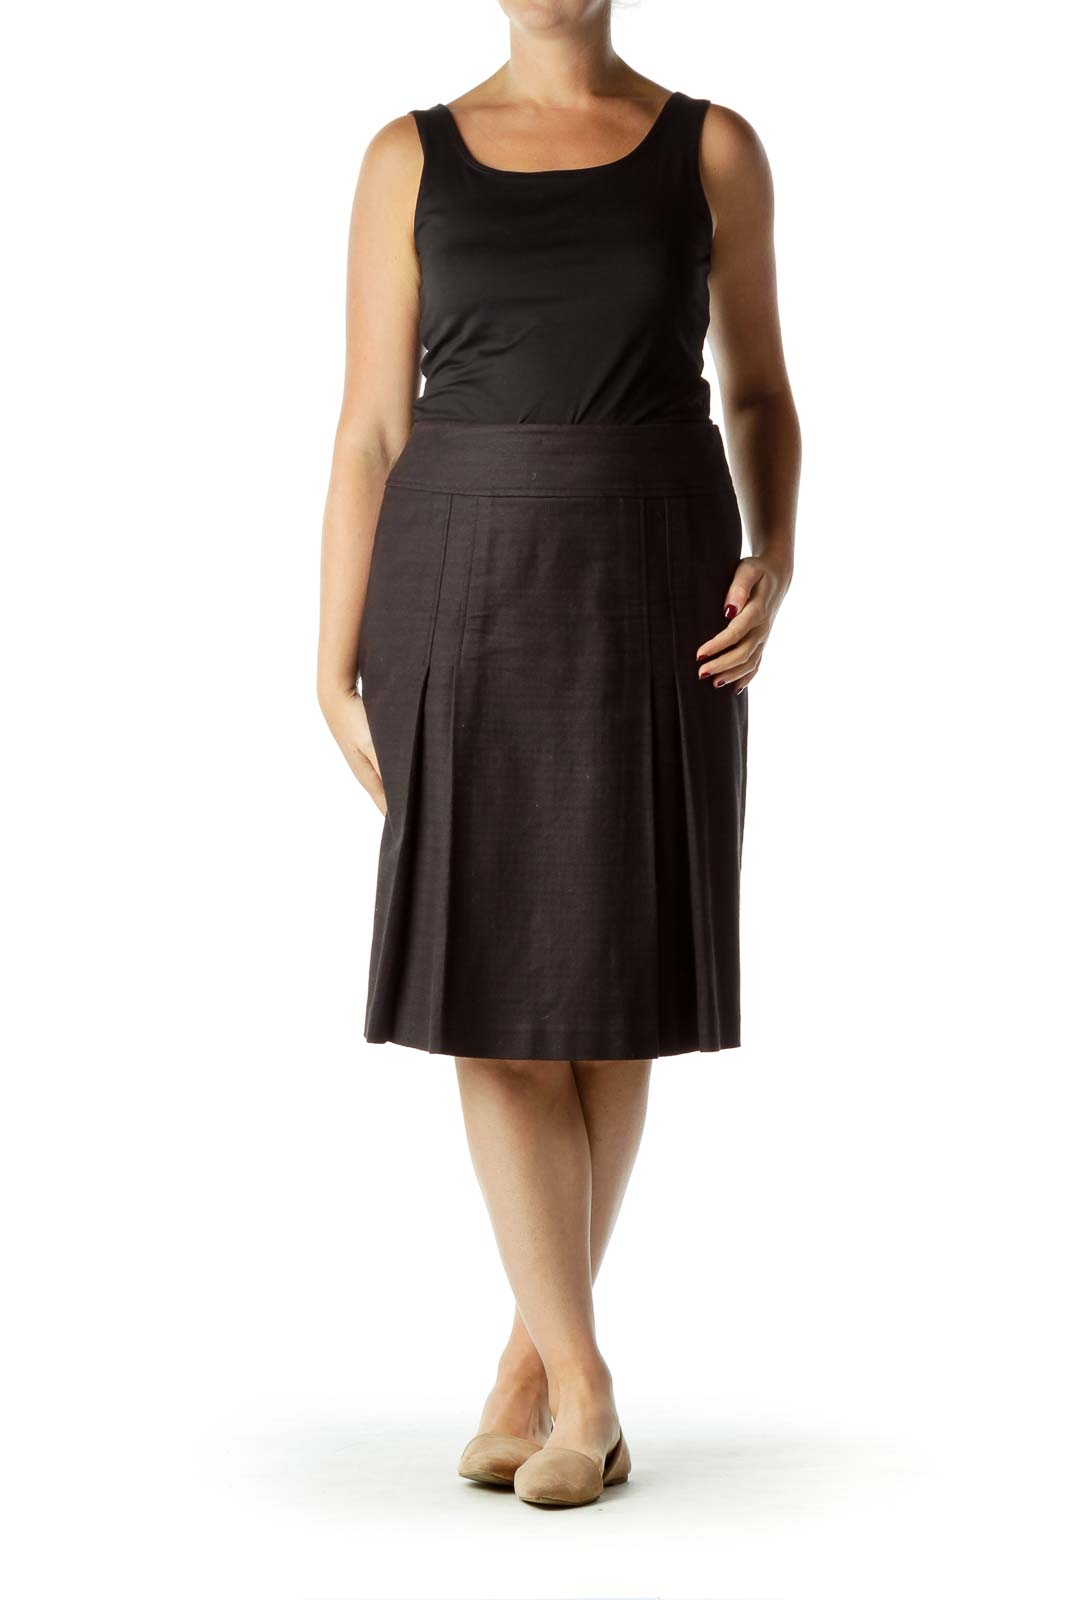 Black Pleat Detailed A-line Skirt